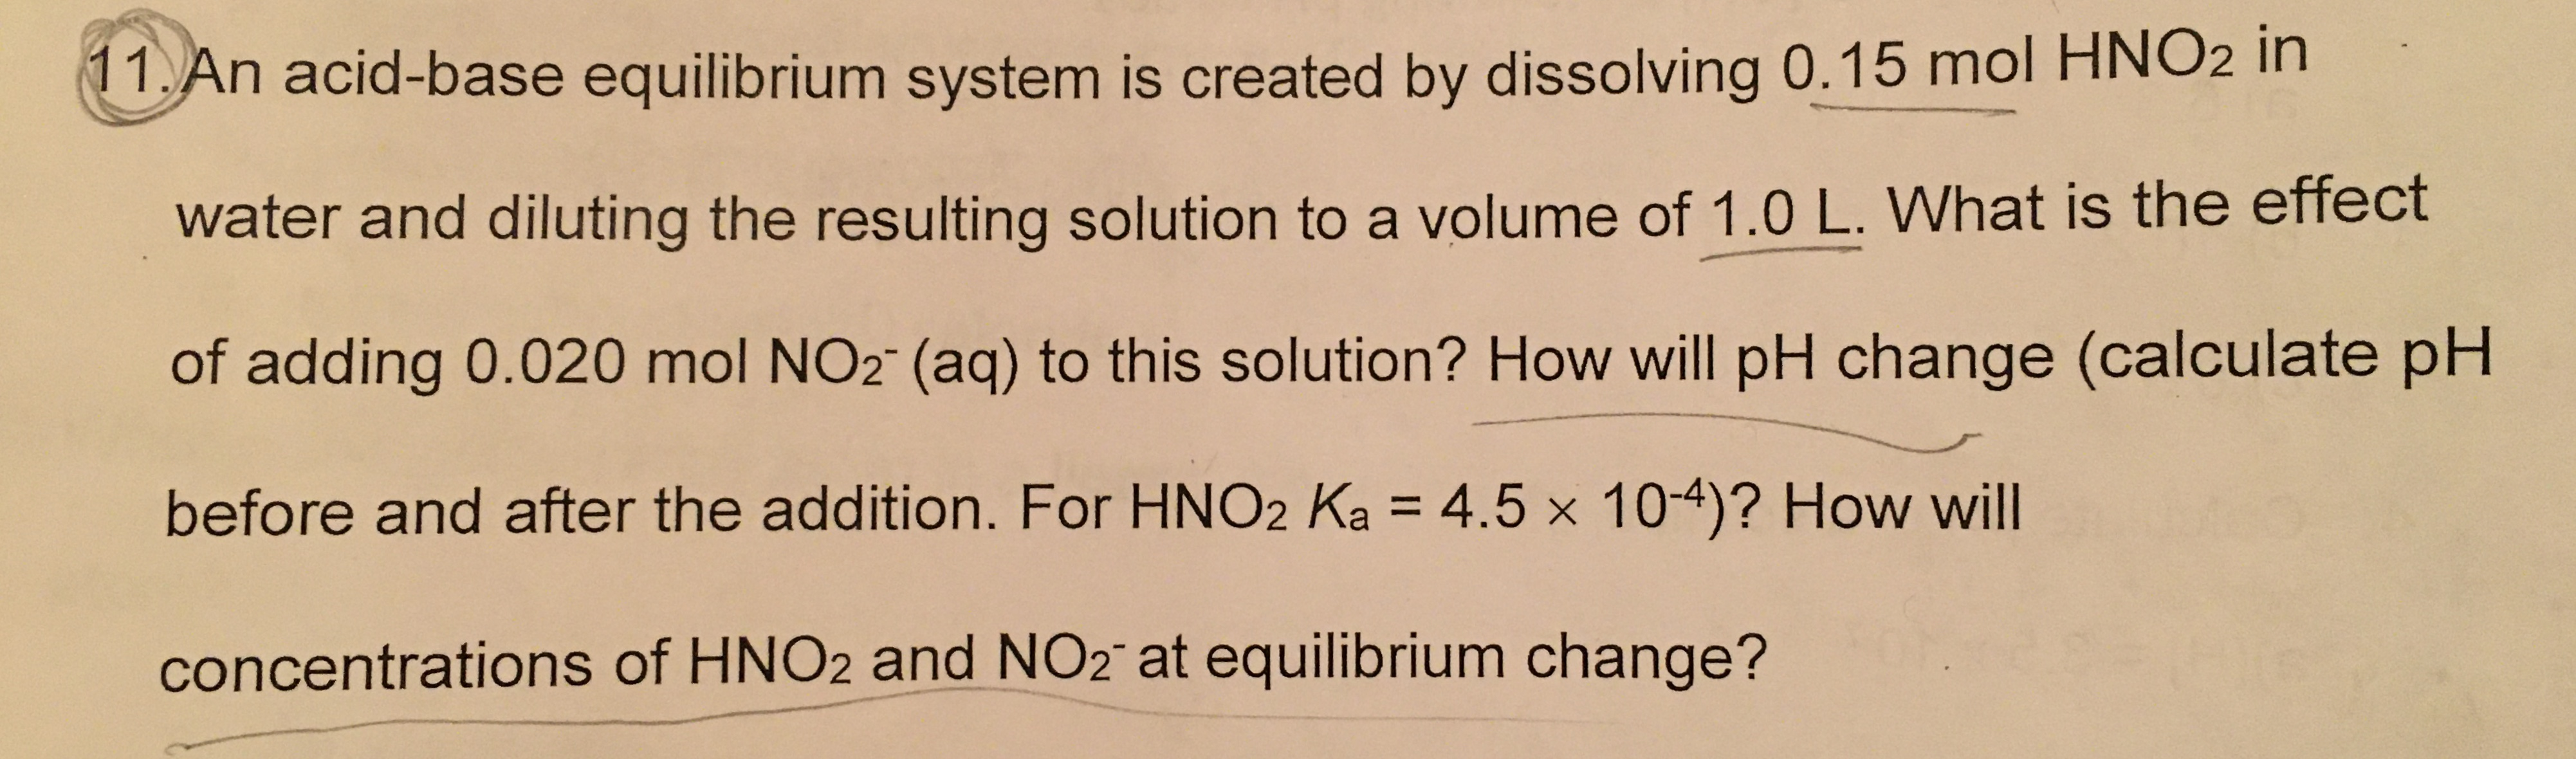 11.An acid-base equilibrium system is created by dissolving 0.15 mol HNO2 in water and diluting the resulting solution to a volume of 1.0 L. What is the effect of adding 0.020 mol NO2 (aq) to this solution? How will pH change (calculate pH before and after the addition. For HNO2 Ka = 4.5 x 104)? How will concentrations of HNO2 and NO2 at equilibrium change?